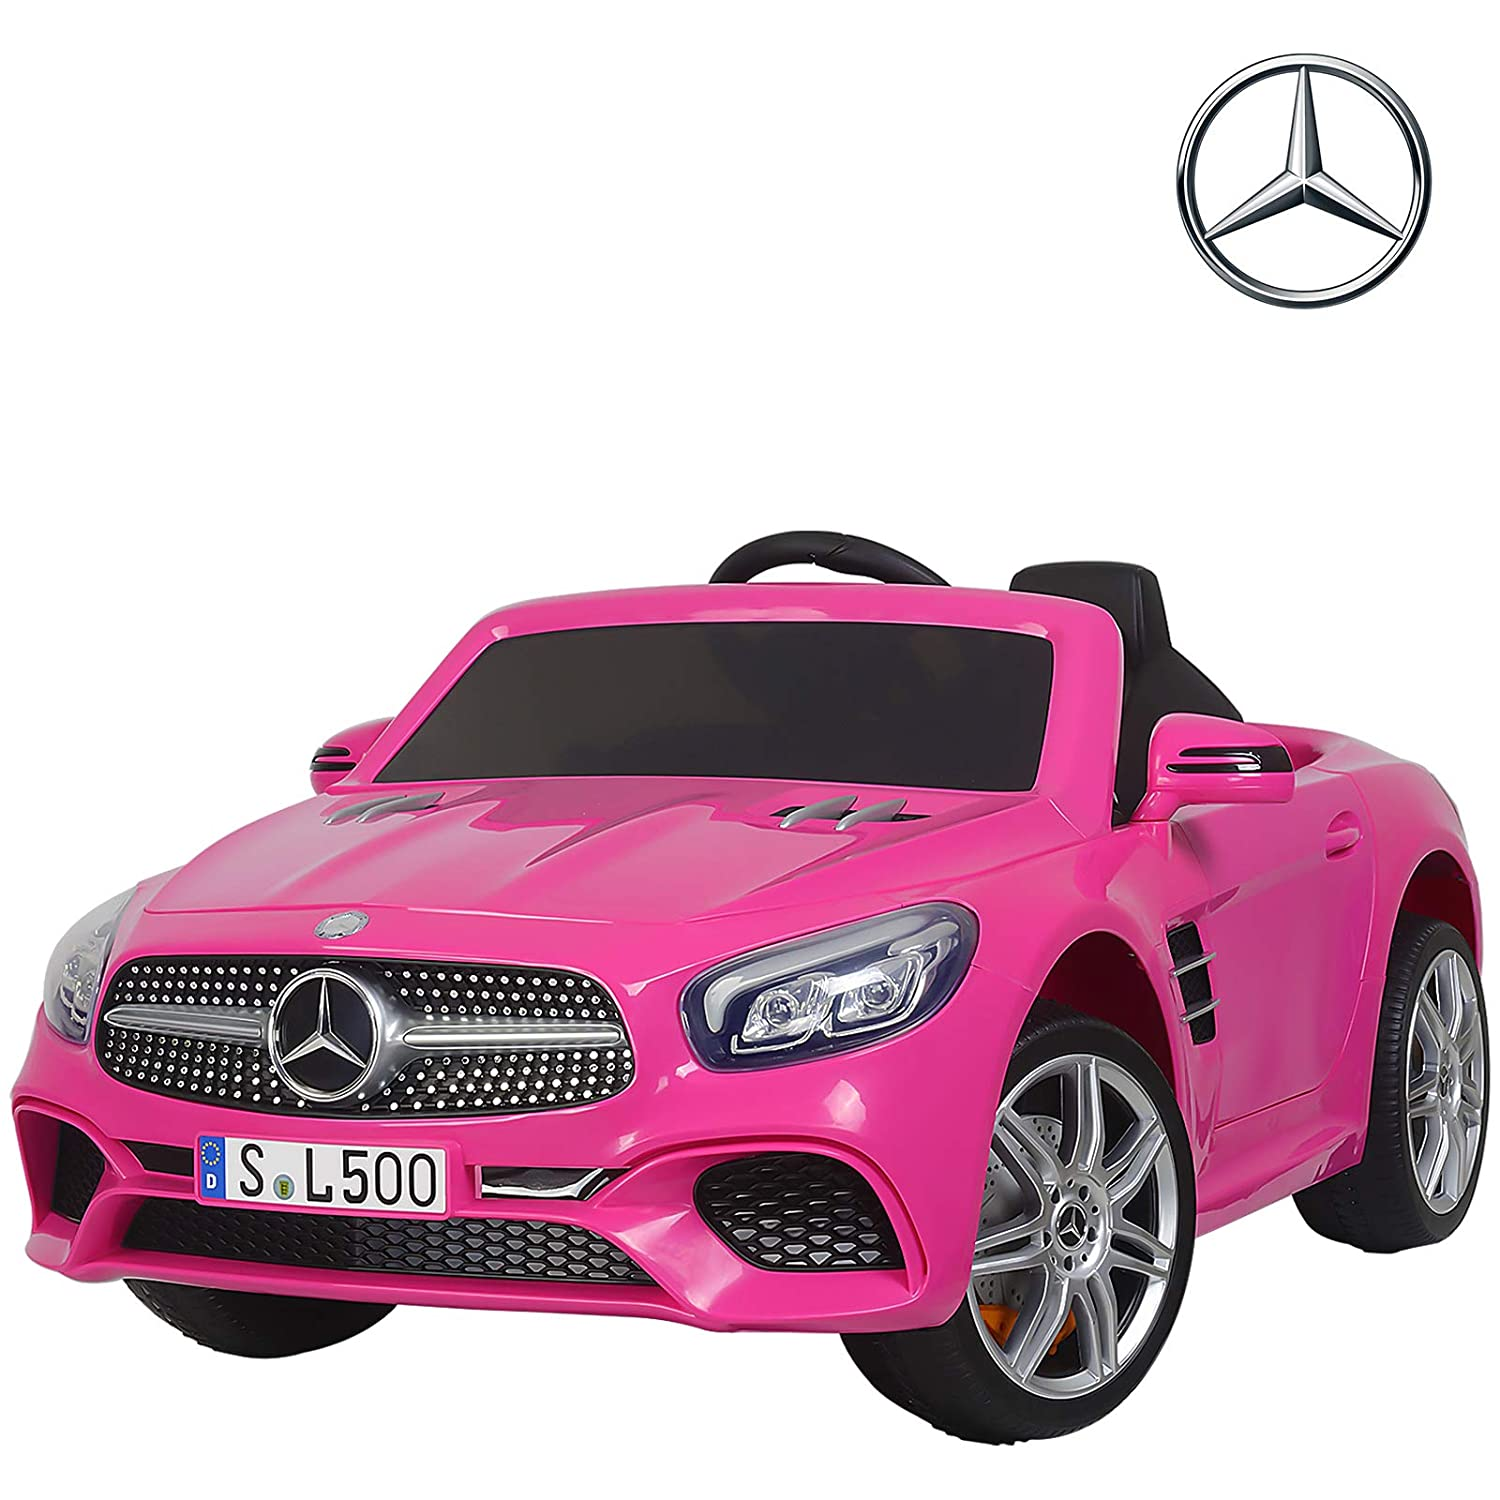 Electric Kids Cars >> Uenjoy 12v Licensed Mercedes Benz Sl500 Kids Ride On Car Electric Cars Motorized Vehicles For Girls With Remote Control Music Horn Spring